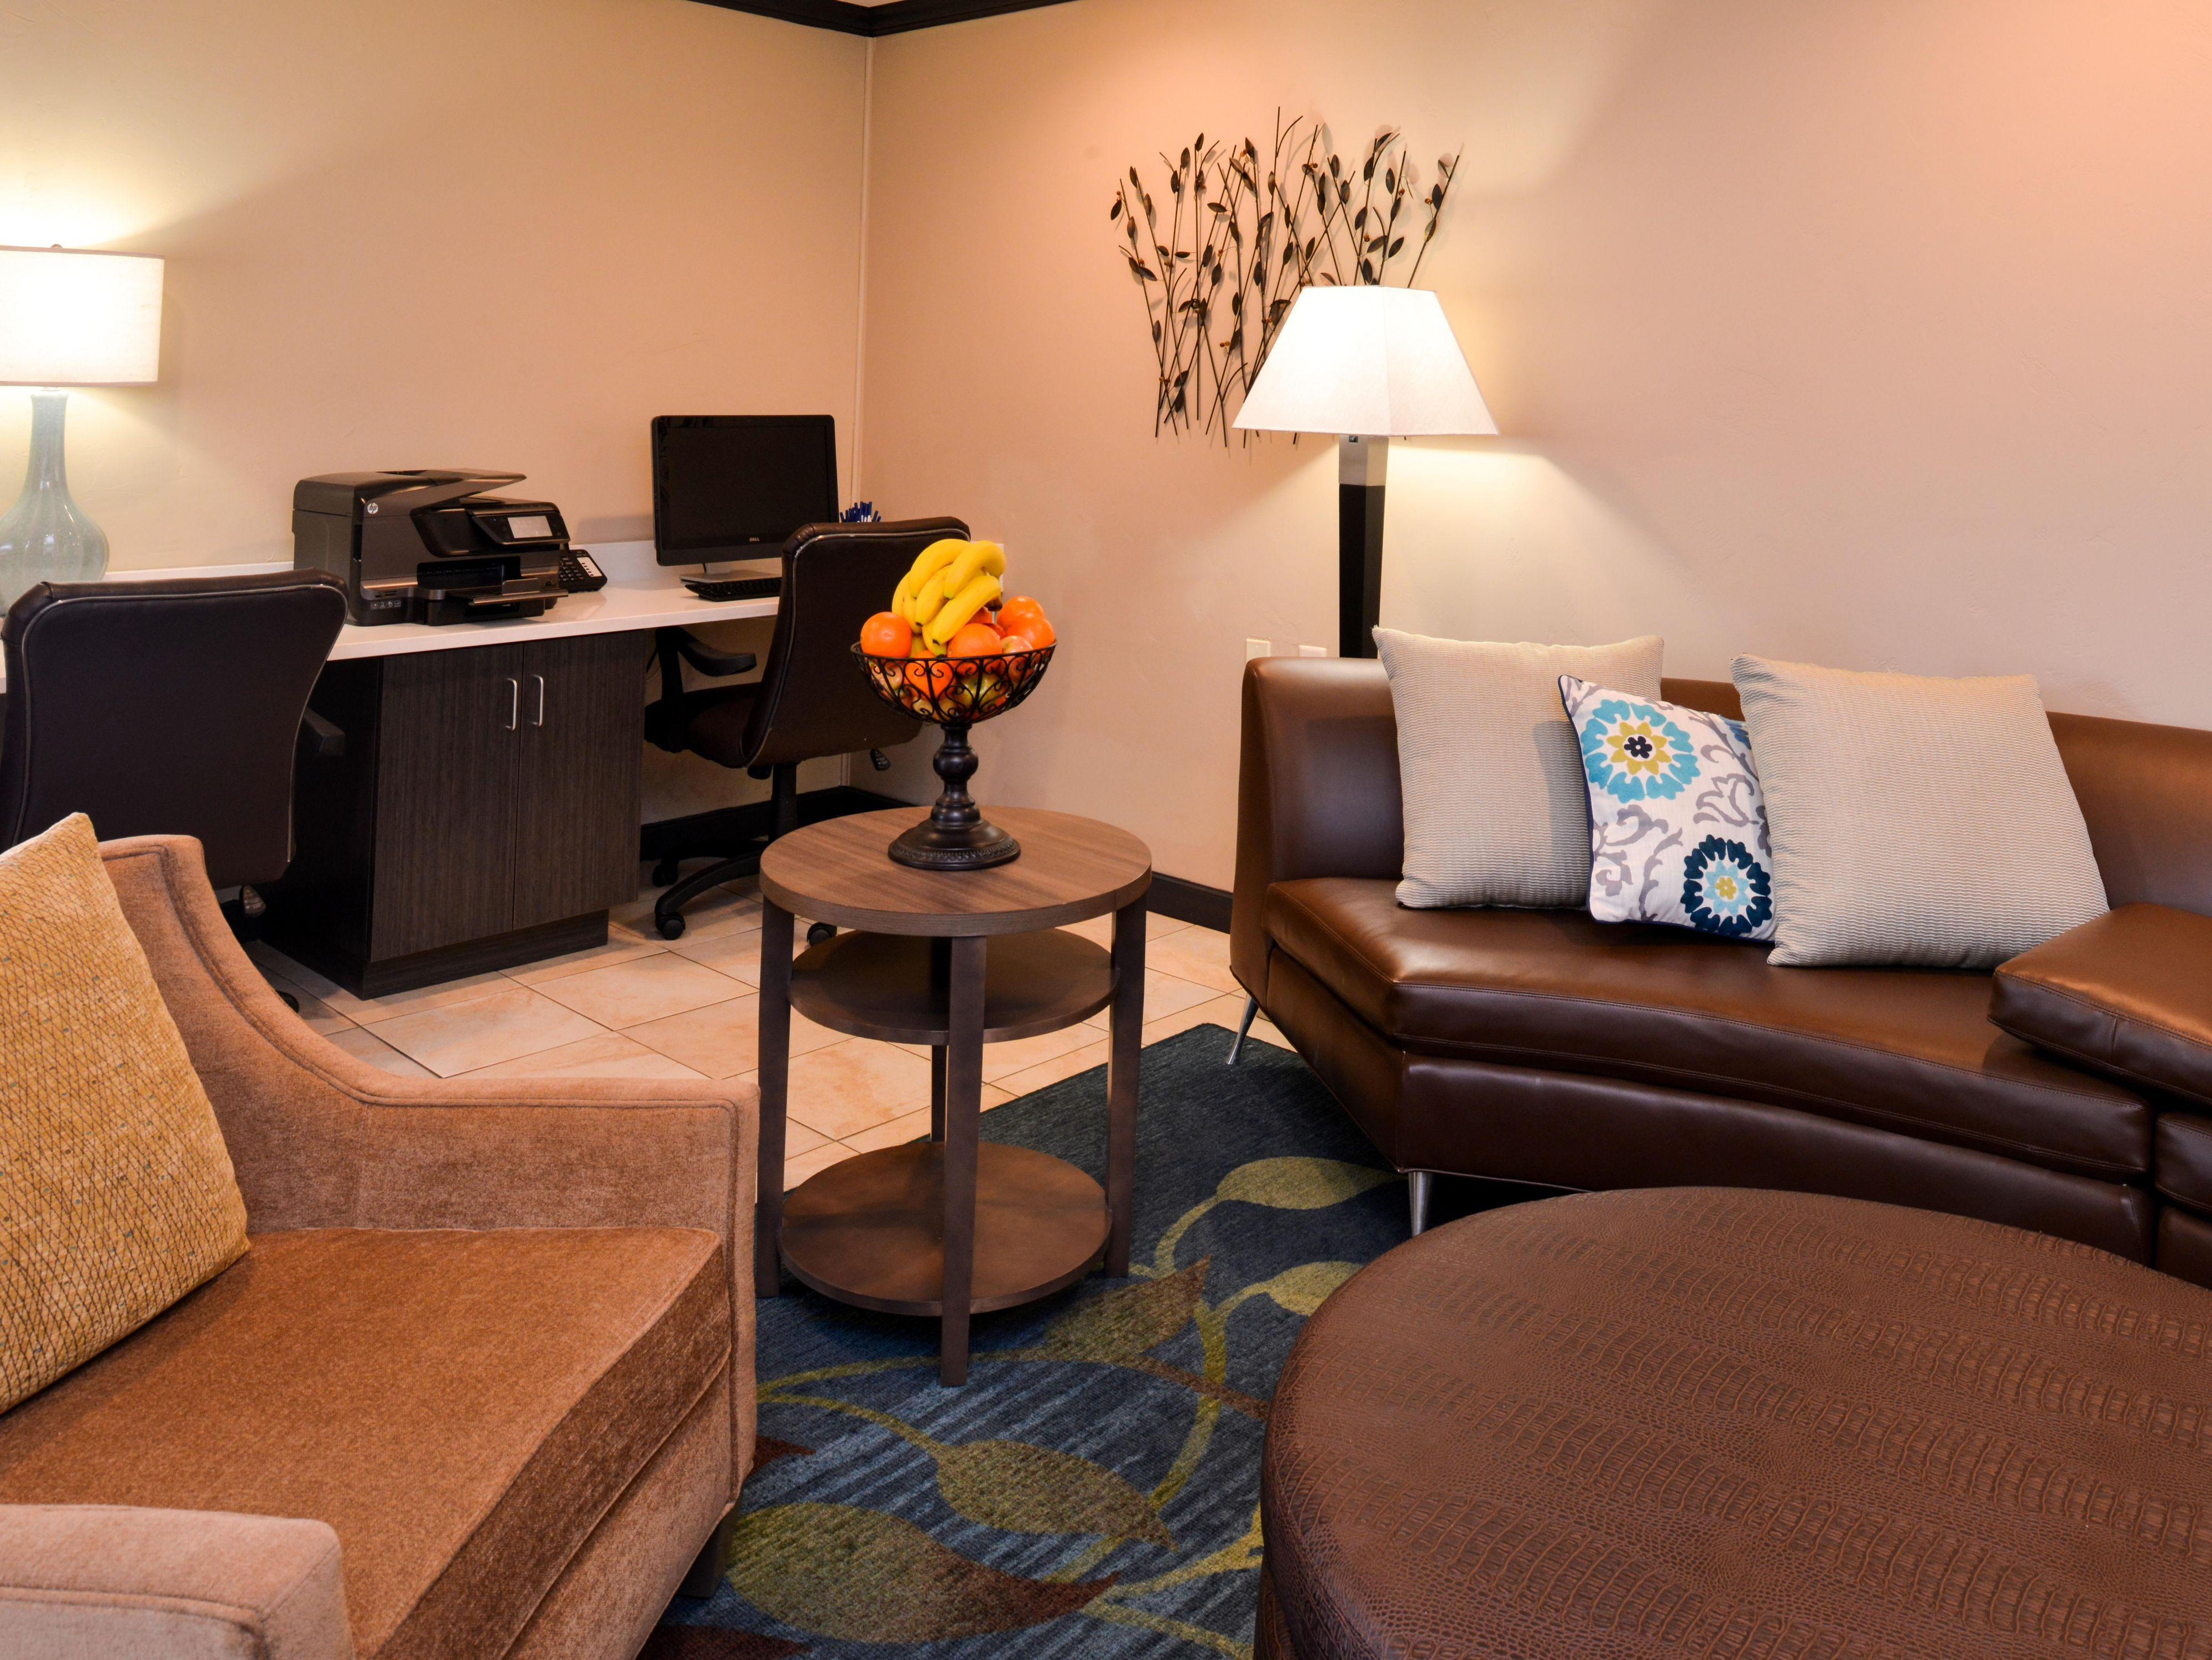 Cost of living in meridian idaho cost of living in boise idaho by hotel  lobby photoGrace Senior Living Meridian Idaho Images   Home Ideas For your Home. Cost Of Living In Meridian Idaho. Home Design Ideas